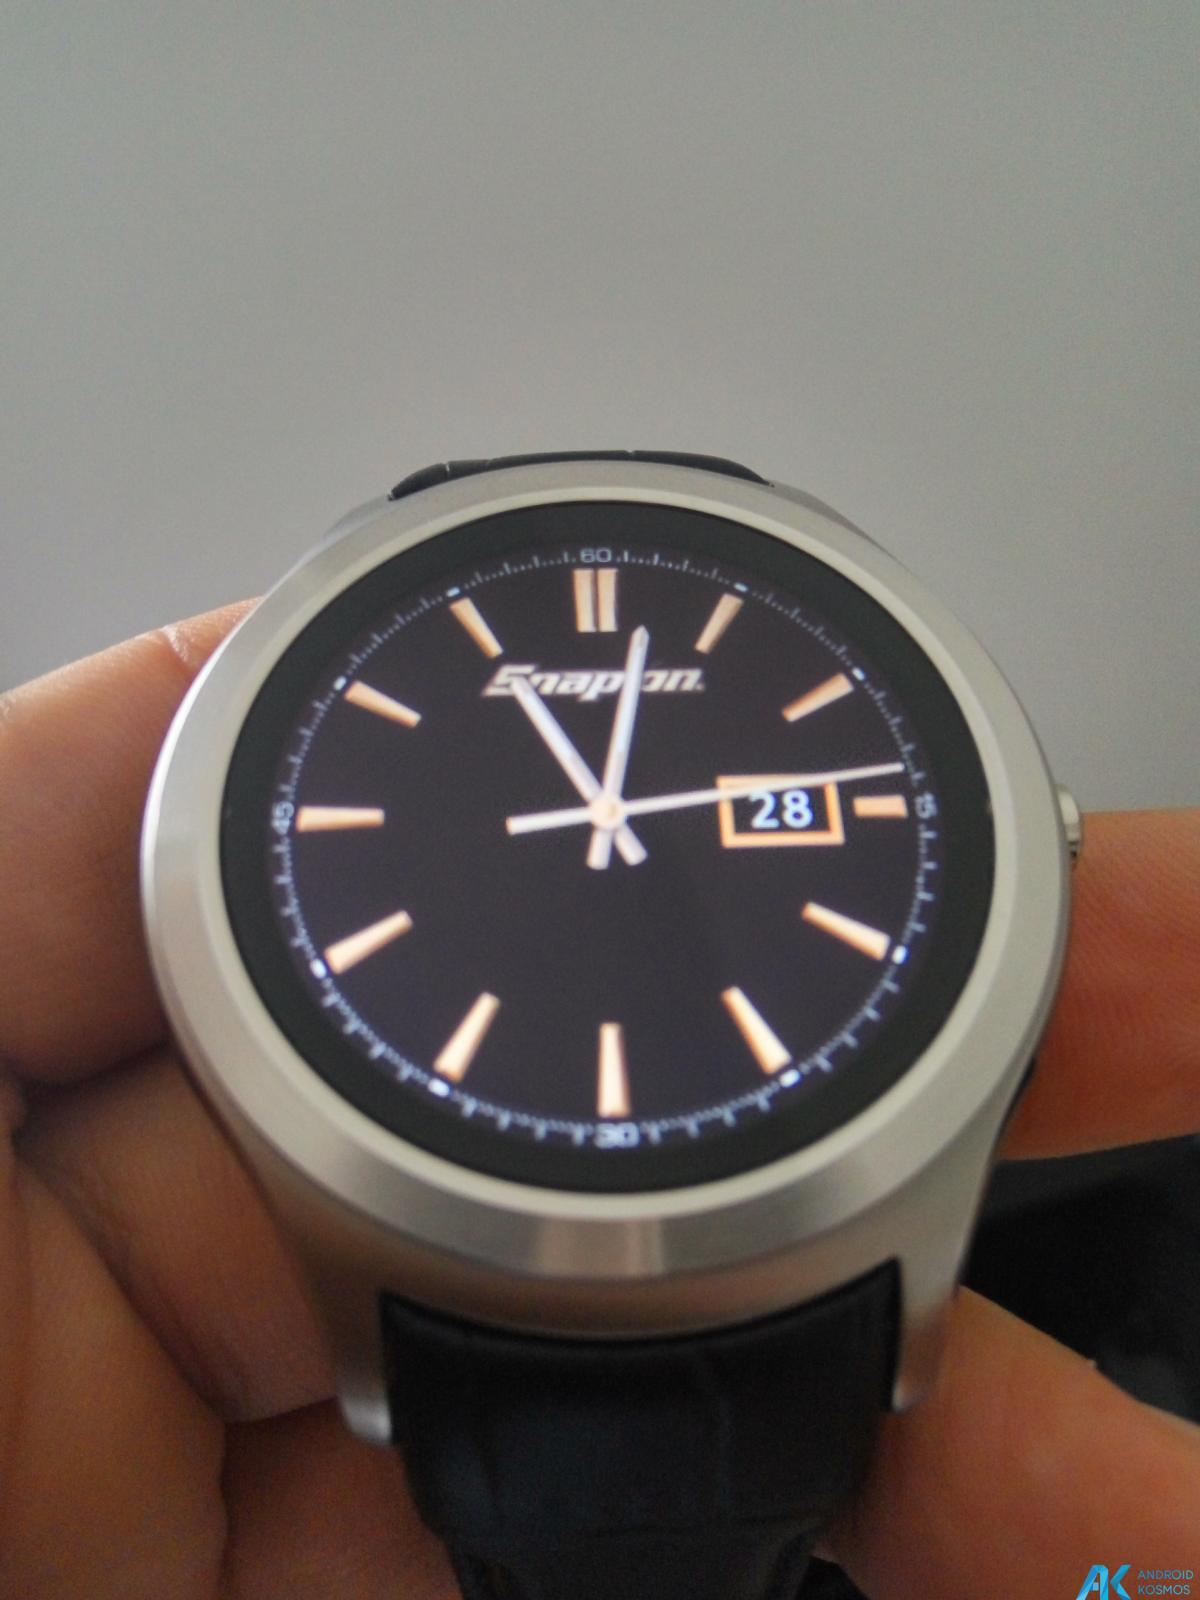 Test / Review No.1 D5 Smartwatch aus Fernost mit nativem Android 30